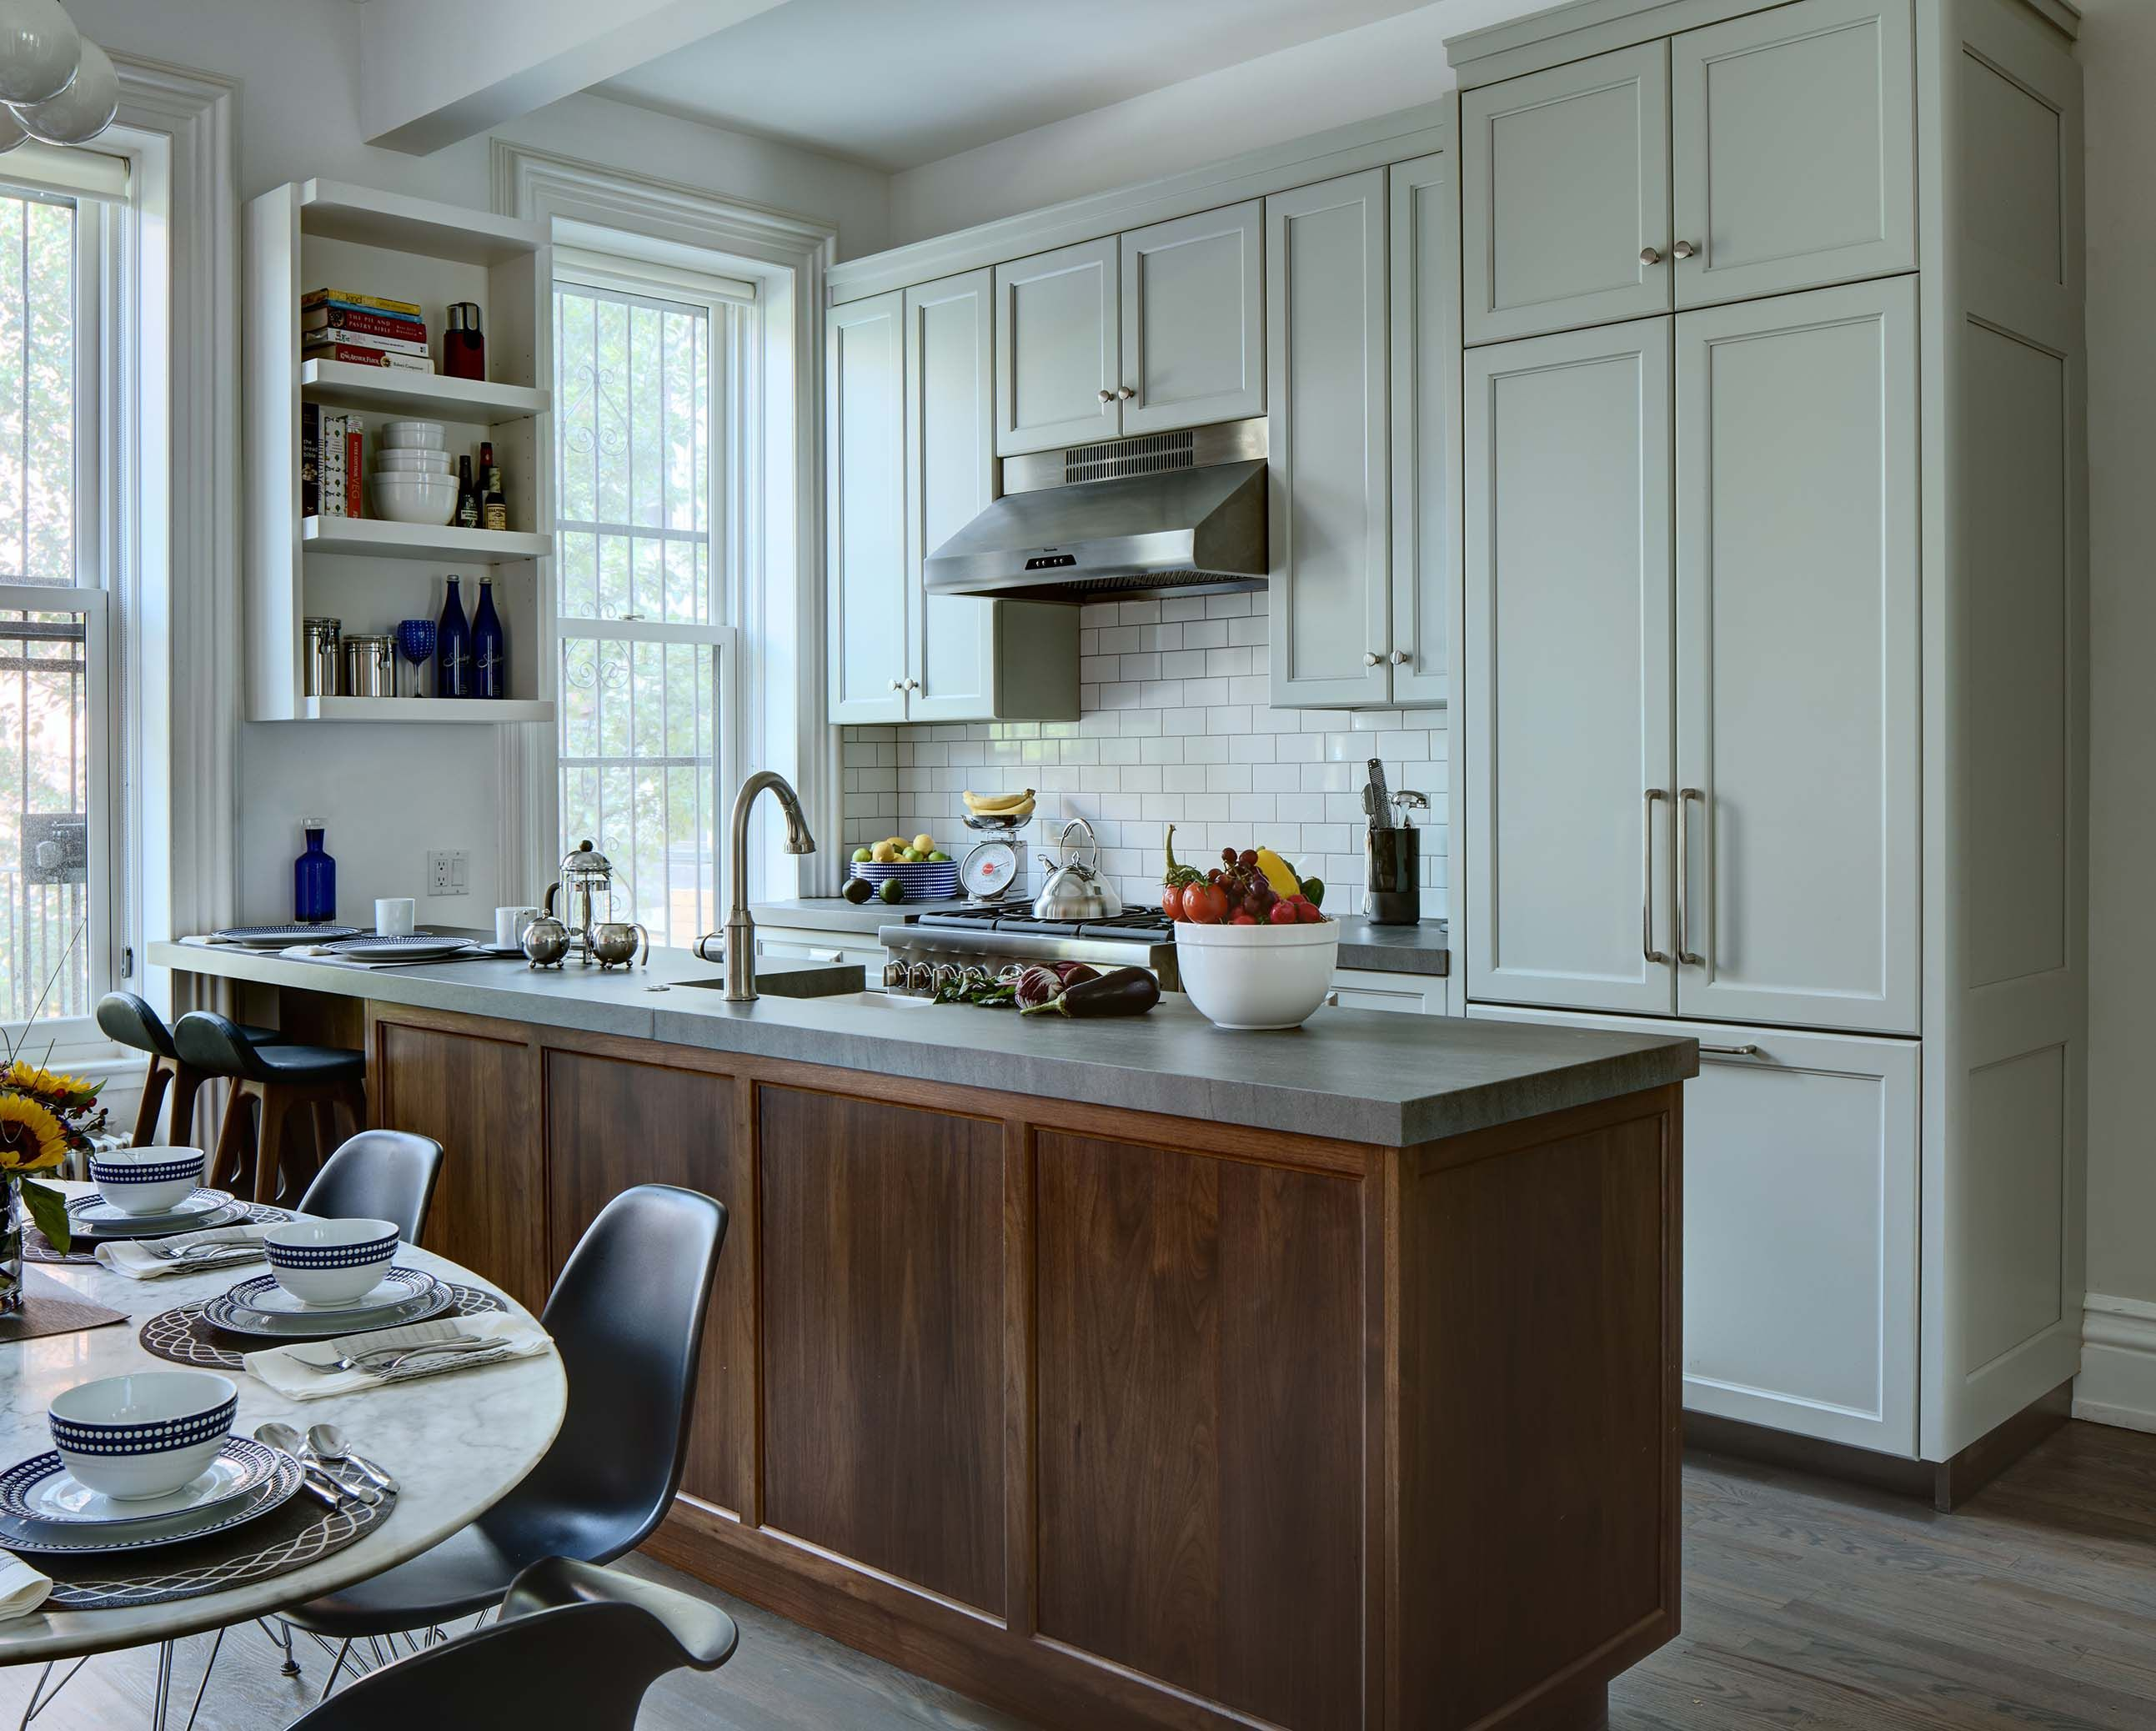 custom kitchen design - Walnut base cabinetry, paint wall and tall ...